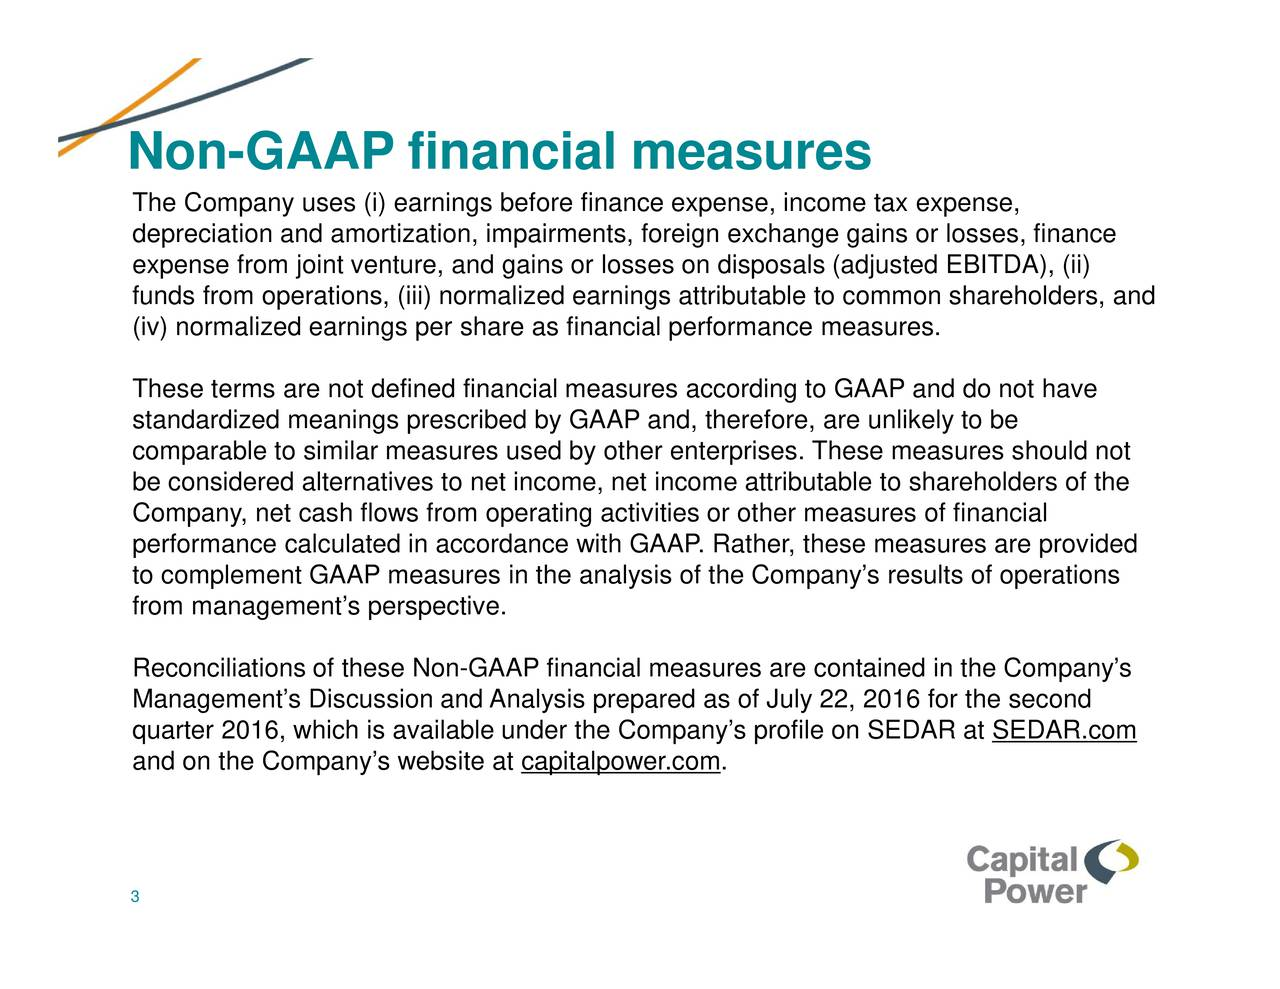 The Company uses (i) earnings before finance expense, income tax expense, depreciation and amortization, impairments, foreign exchange gains or losses, finance expense from joint venture, and gains or losses on disposals (adjusted EBITDA), (ii) funds from operations, (iii) normalized earnings attributable to common shareholders, and (iv) normalized earnings per share as financial performance measures. These terms are not defined financial measures according to GAAP and do not have standardized meanings prescribed by GAAP and, therefore, are unlikely to be comparable to similar measures used by other enterprises. These measures should not be considered alternatives to net income, net income attributable to shareholders of the Company, net cash flows from operating activities or other measures of financial performance calculated in accordance with GAAP. Rather, these measures are provided to complement GAAP measures in the analysis of the Companys results of operations from managements perspective. Reconciliations of these Non-GAAP financial measures are contained in the Companys Managements Discussion and Analysis prepared as of July 22, 2016 for the second quarter 2016, which is available under the Companys profile on SEDAR at SEDAR.com and on the Companys website at capitalpower.com. 3